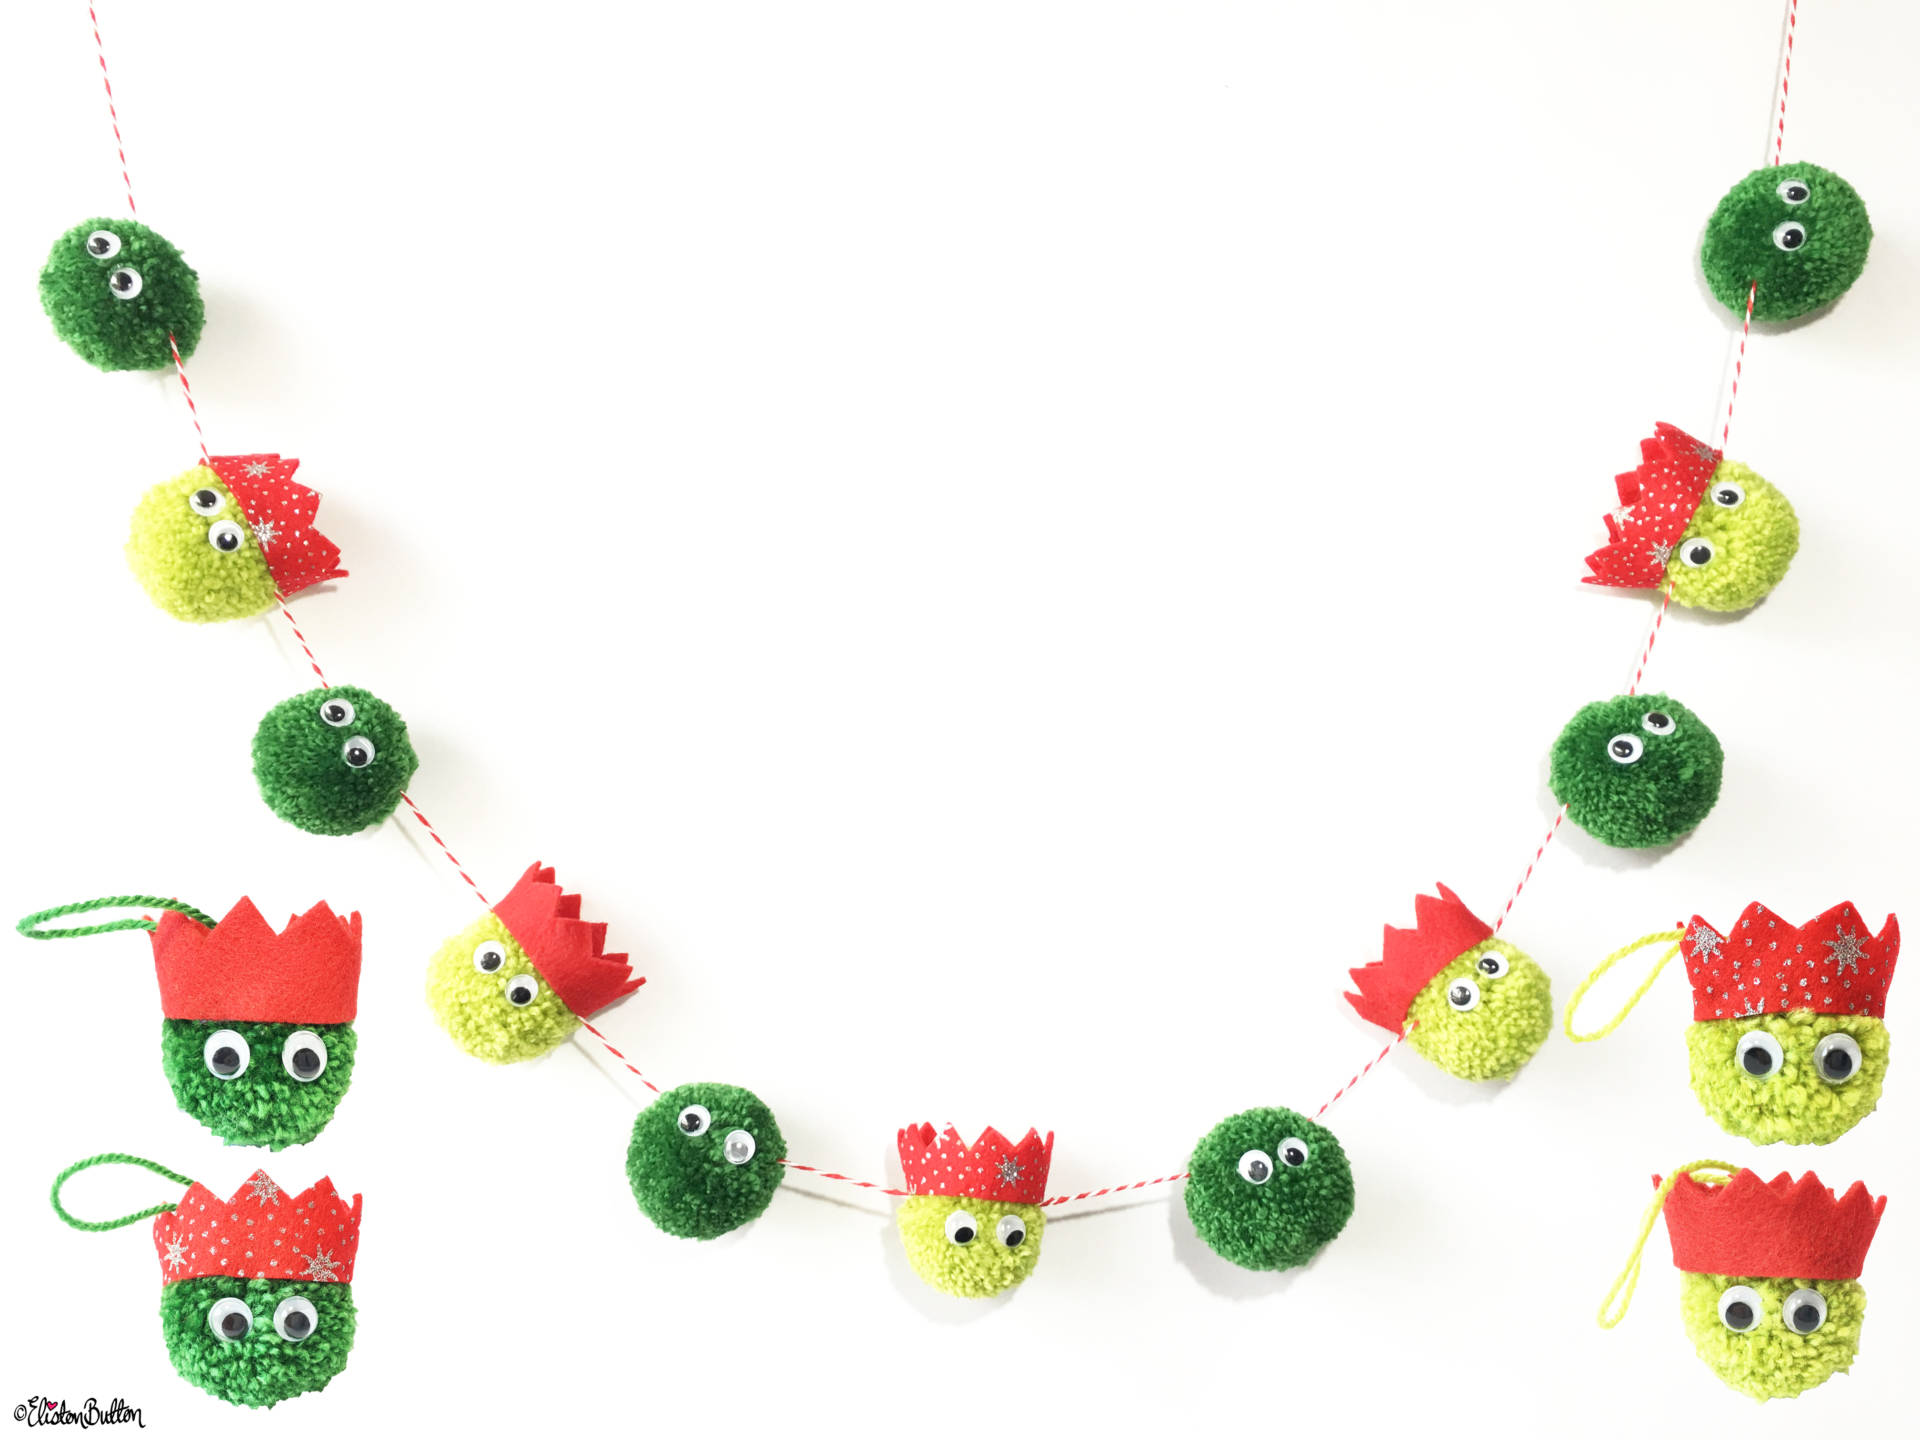 Christmas Sprout Garland and Decorations All Together - Create 30 - No. 8 & 9 - Christmas Sprout Garland and Decorations at www.elistonbutton.com - Eliston Button - That Crafty Kid – Art, Design, Craft & Adventure.